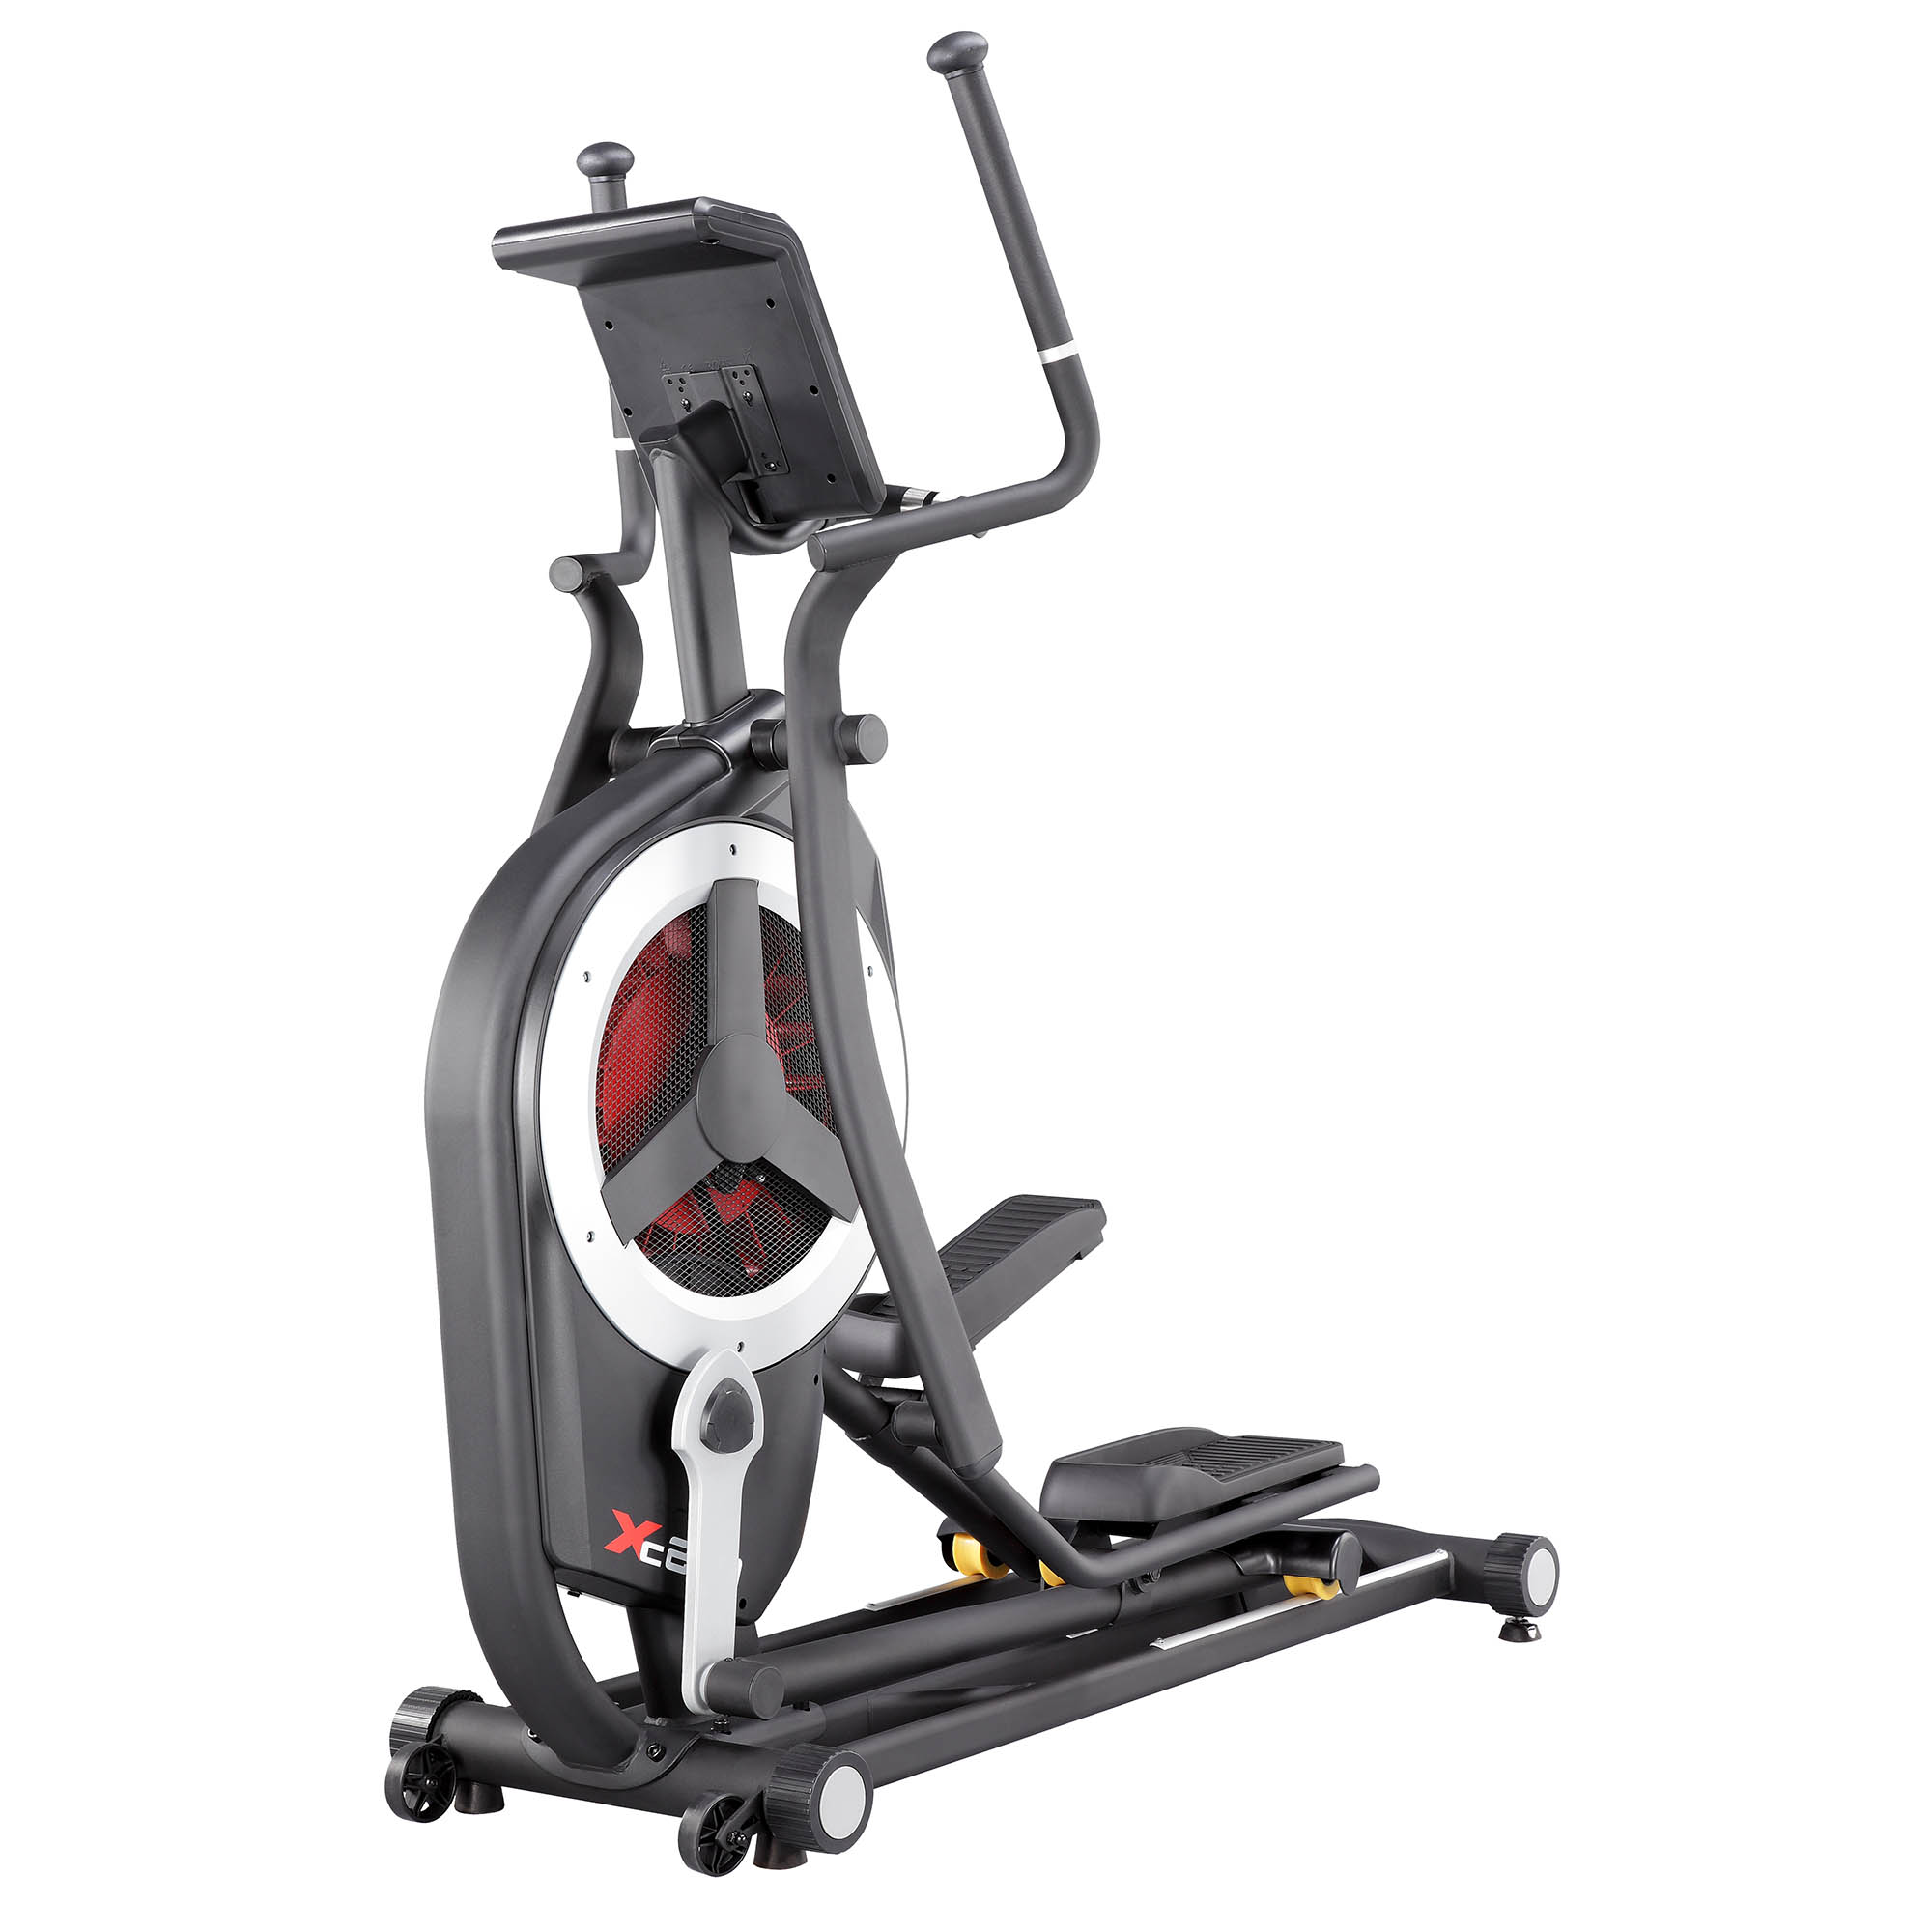 DKN AirTrainer XC220i Elliptical Cross Trainer